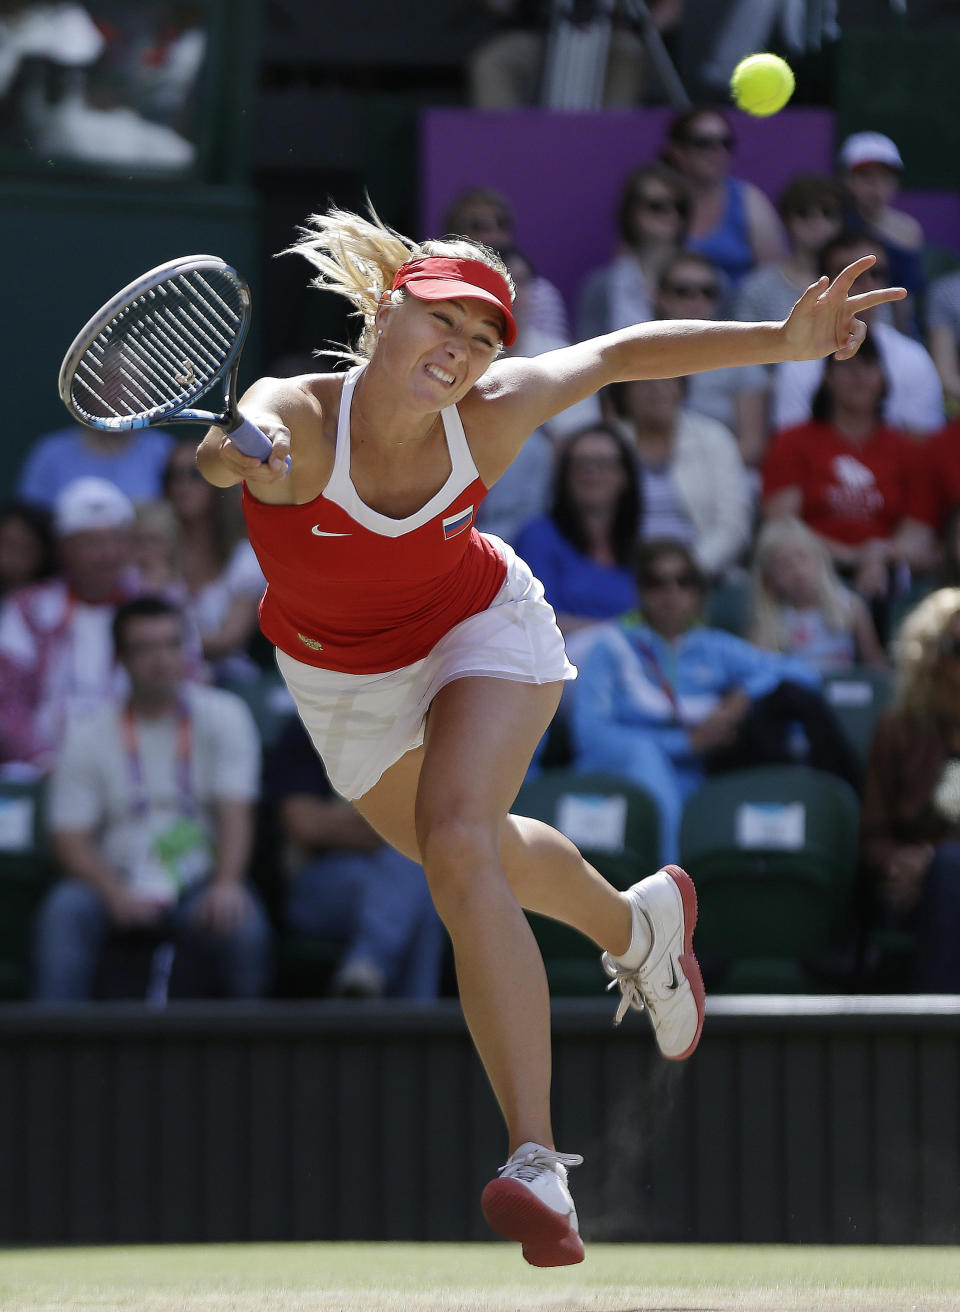 Maria Sharapova of Russia returns to Serena Williams of the United States at the All England Lawn Tennis Club in Wimbledon, London at the 2012 Summer Olympics, Saturday, Aug. 4, 2012. (AP Photo/Elise Amendola)